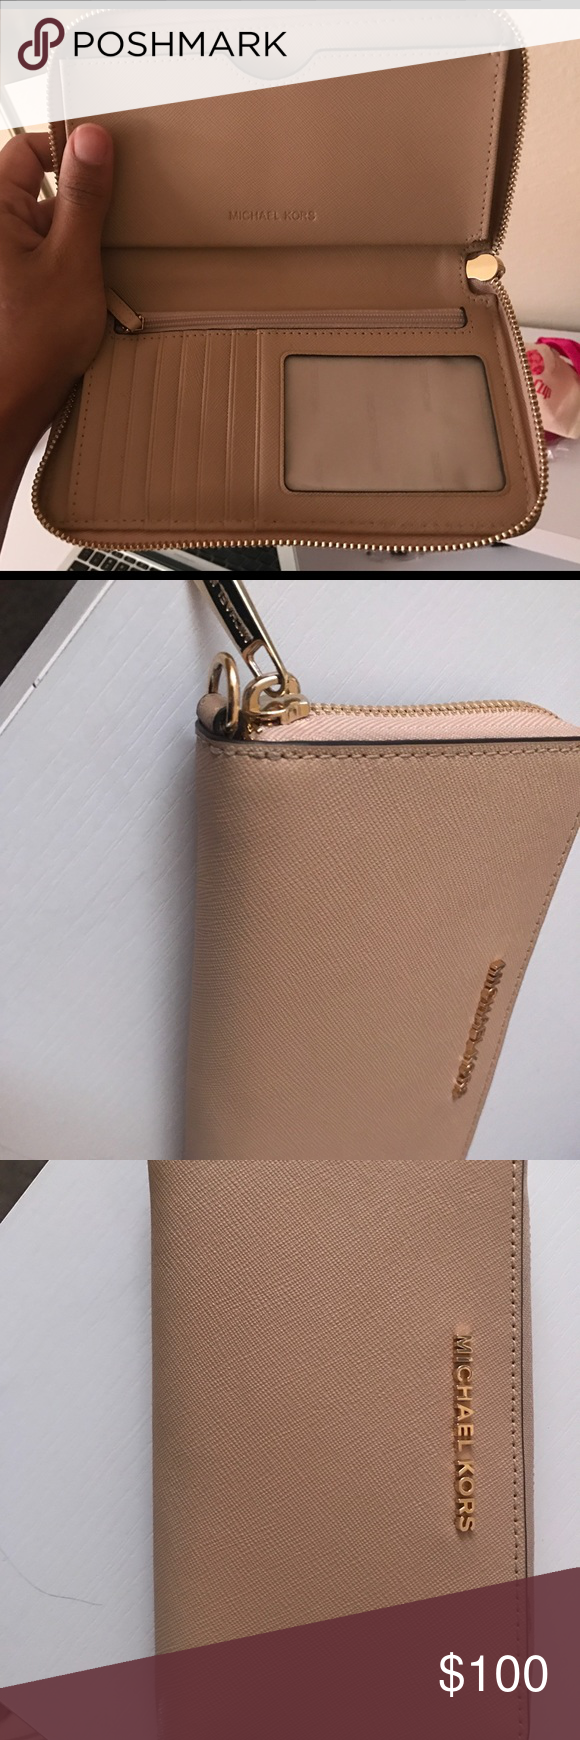 02c64146199d8 Michael Kors wallet in the color Oyster In the color Oyster! Beautiful and well  taken care of Michael Kors Wallet. Fits iPhone 6 Plus and 7 plus.